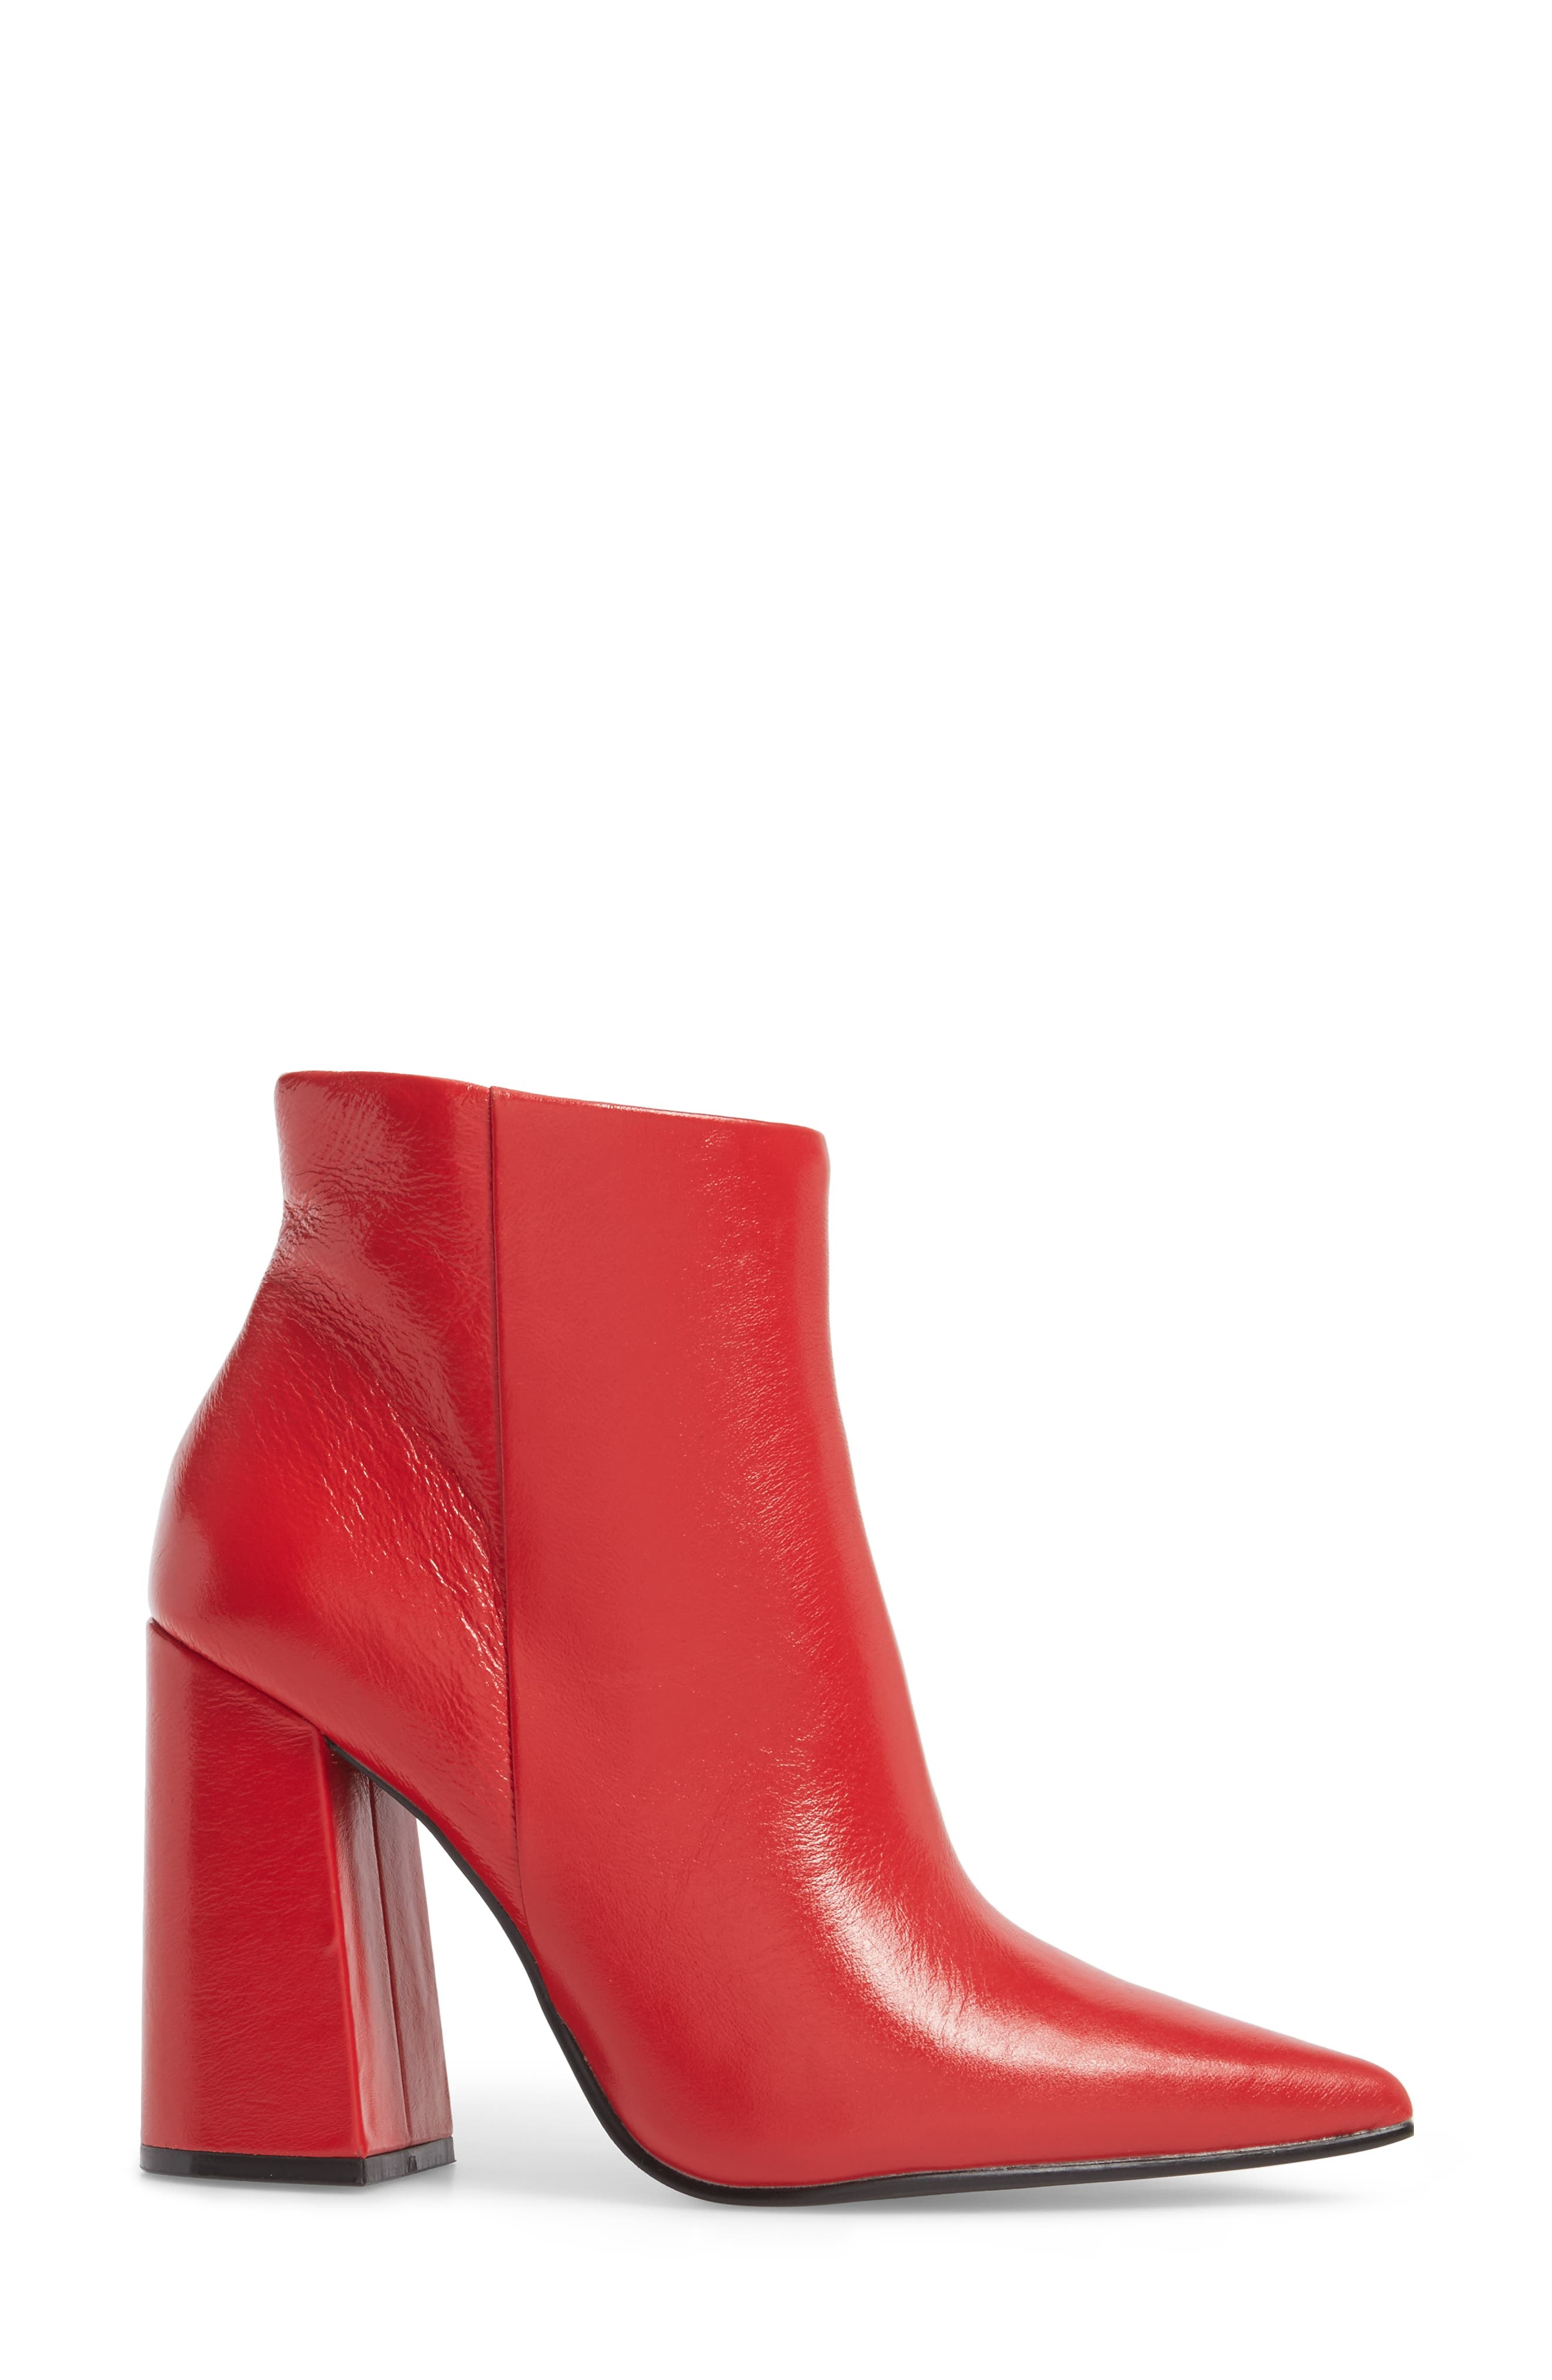 Justify Flared Heel Bootie,                             Alternate thumbnail 3, color,                             Red Leather